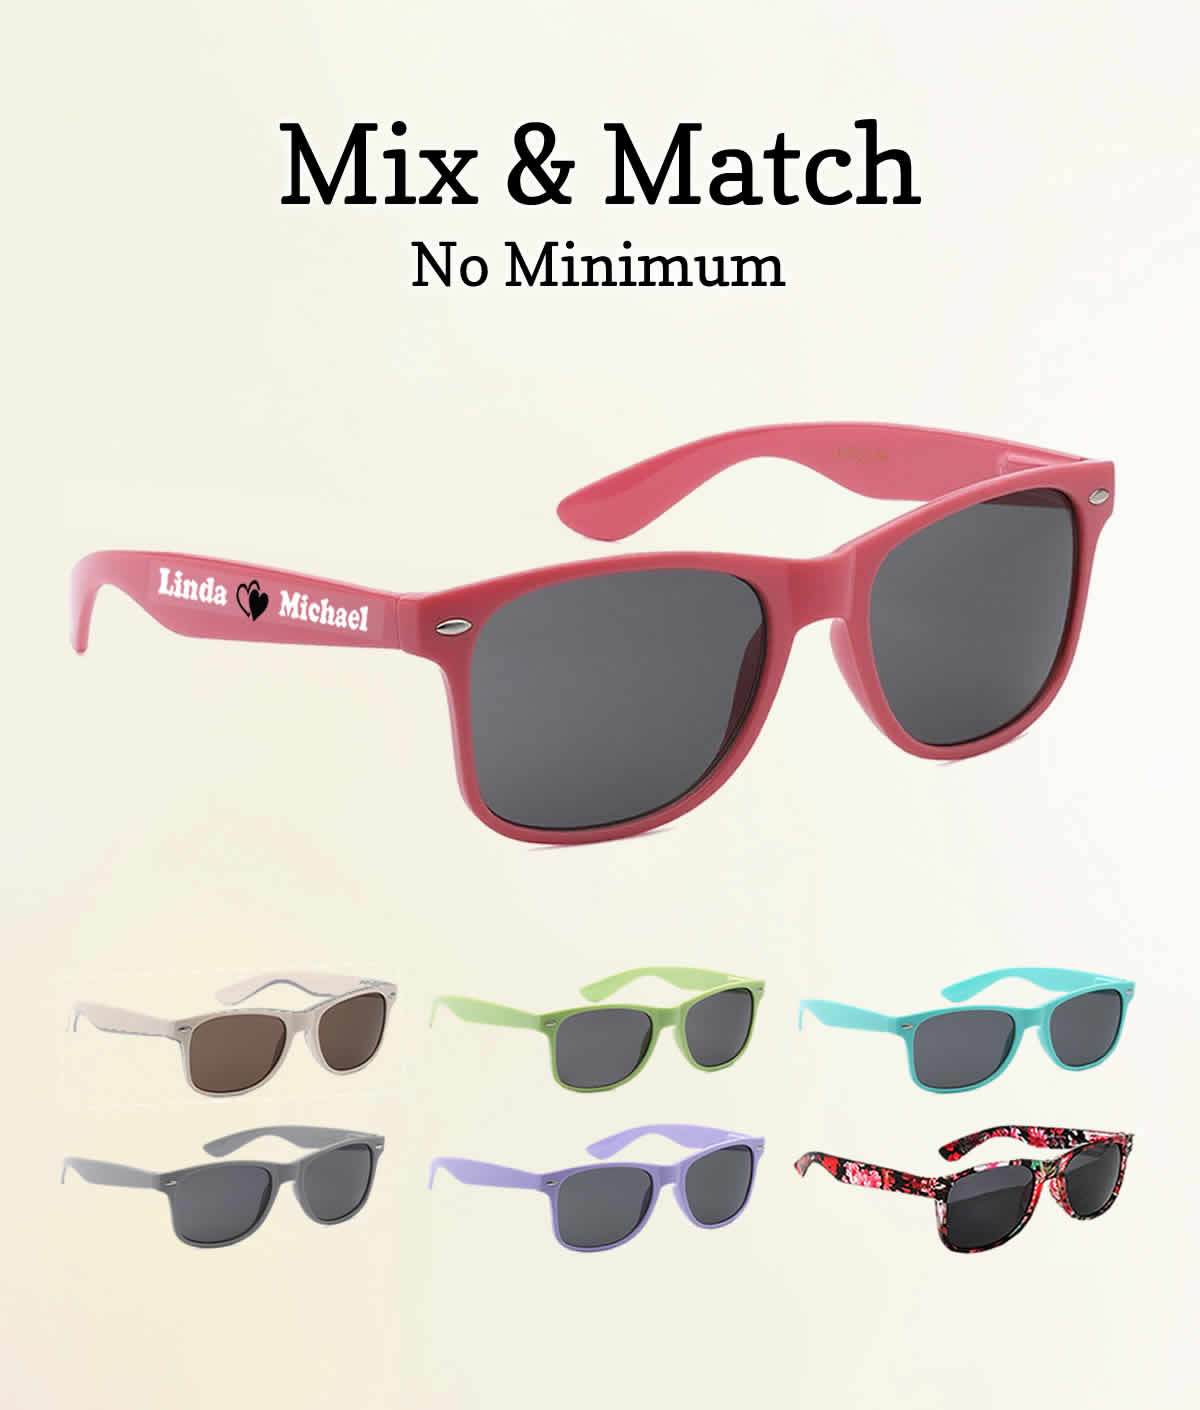 1a59aba427 Red Sunglasses Party Favors « Heritage Malta